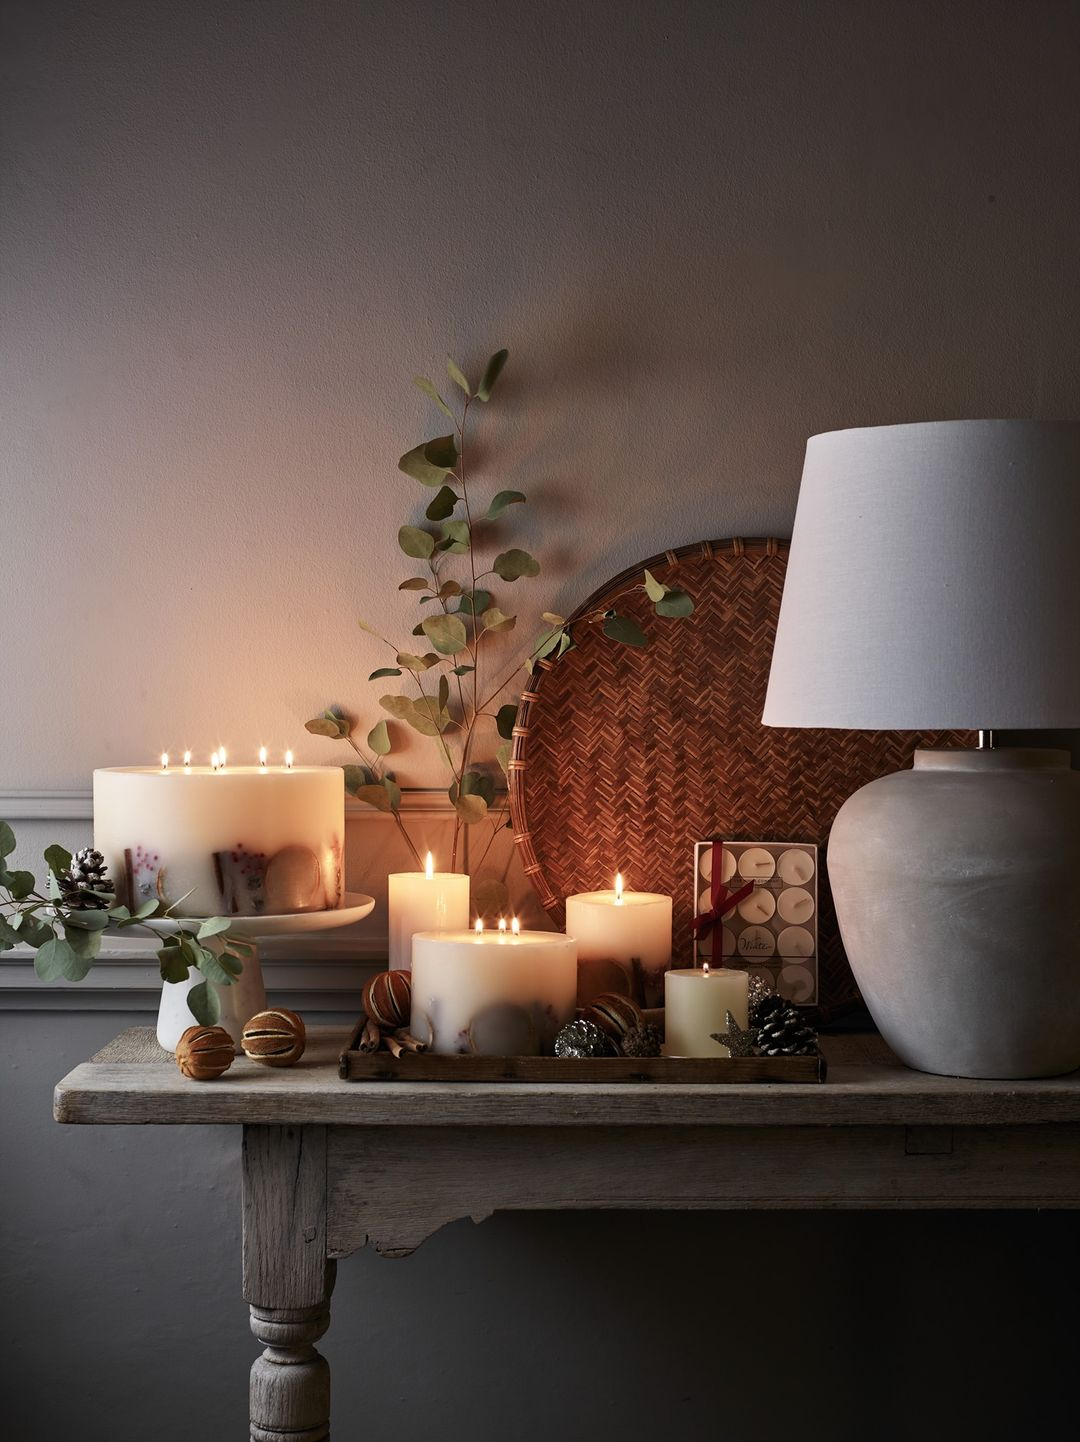 The White Company bedding is white and sleek. They also sell divine candles that fit in perfectly with the simple white bedding.